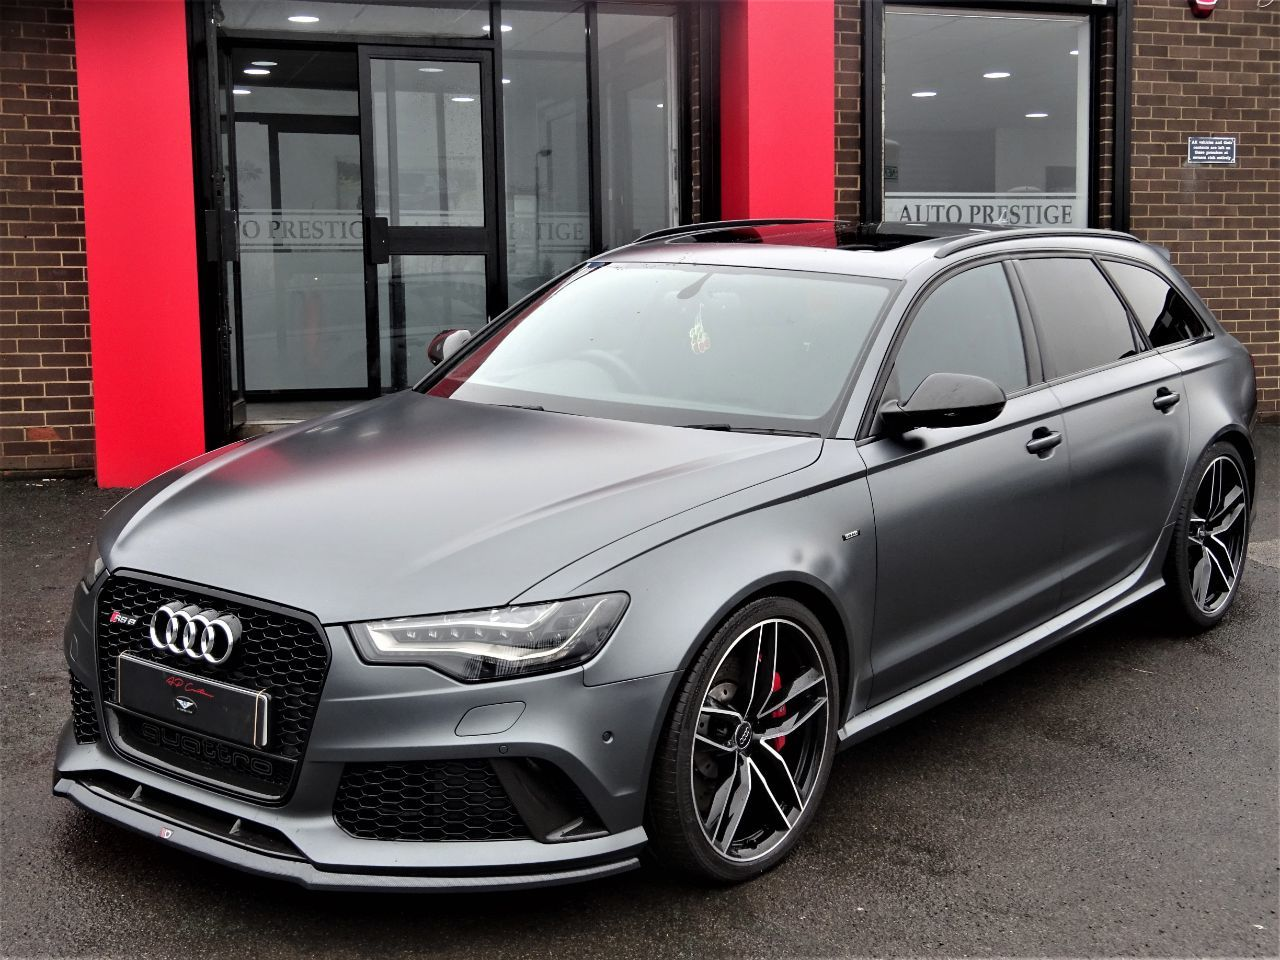 used audi rs6 and second hand audi rs6 in west yorkshire. Black Bedroom Furniture Sets. Home Design Ideas